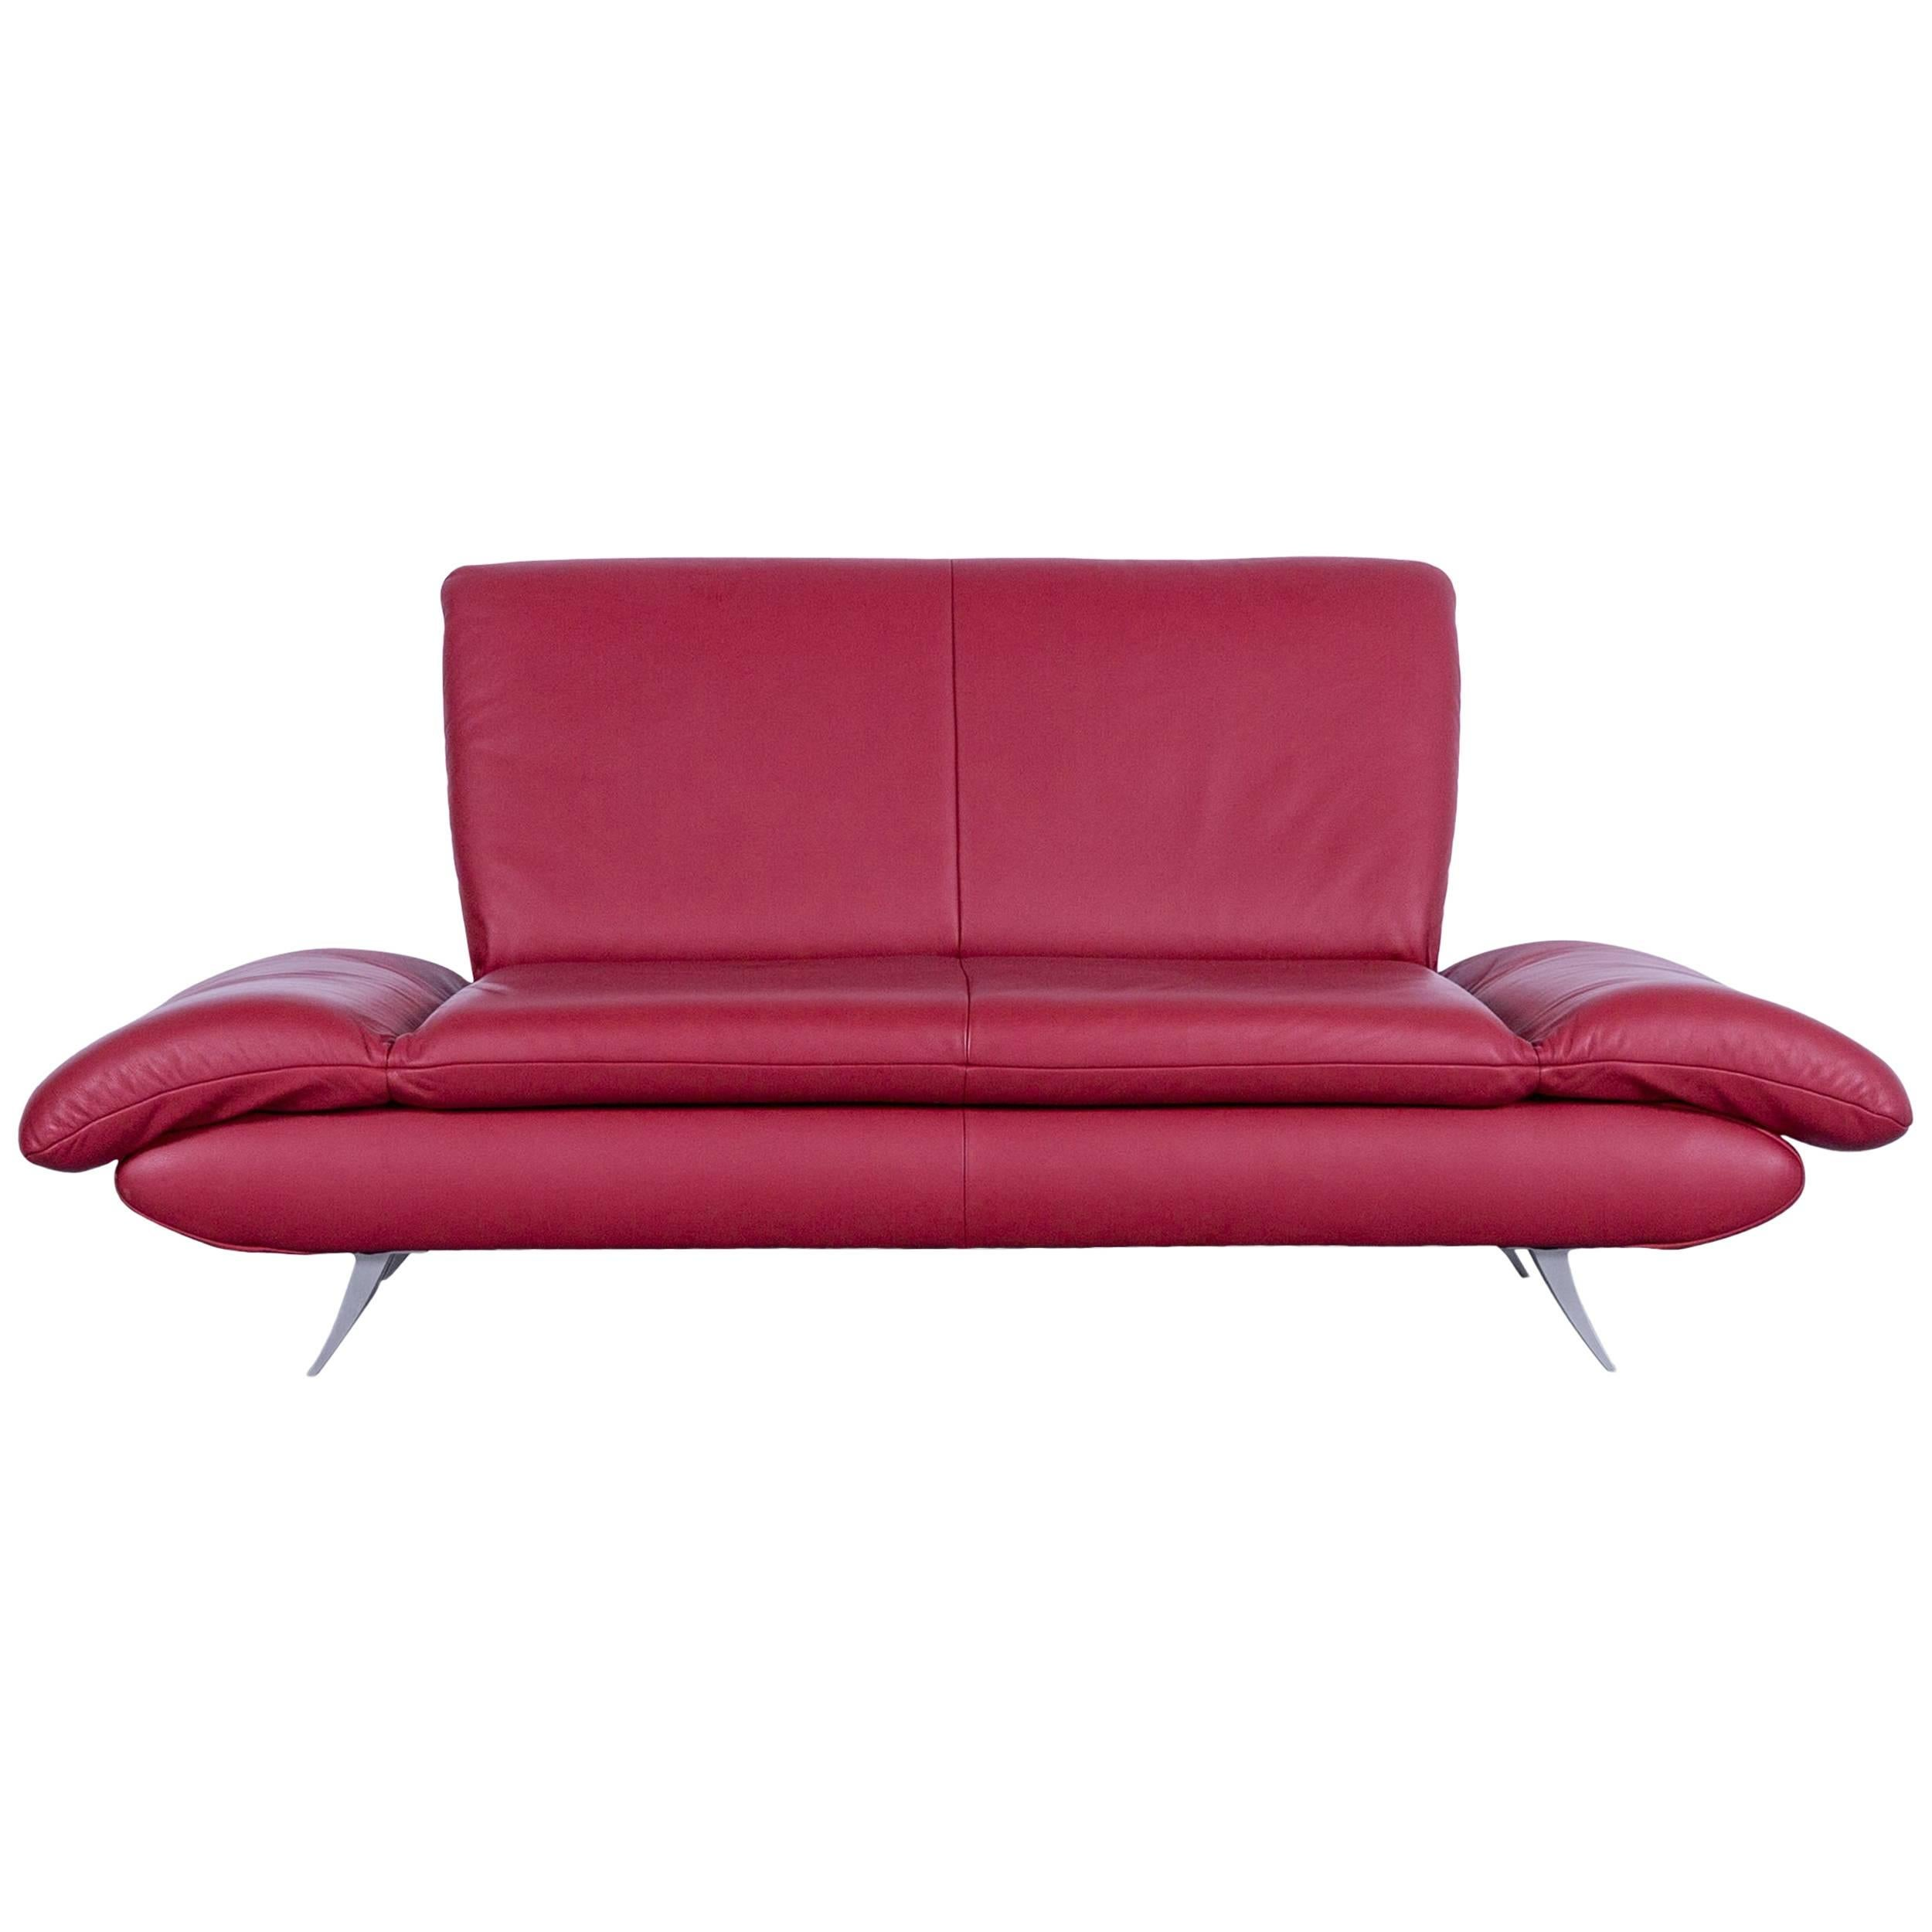 red leather two seater sofa mattresses for beds canada koinor rossini designer seat in function modern sale at 1stdibs